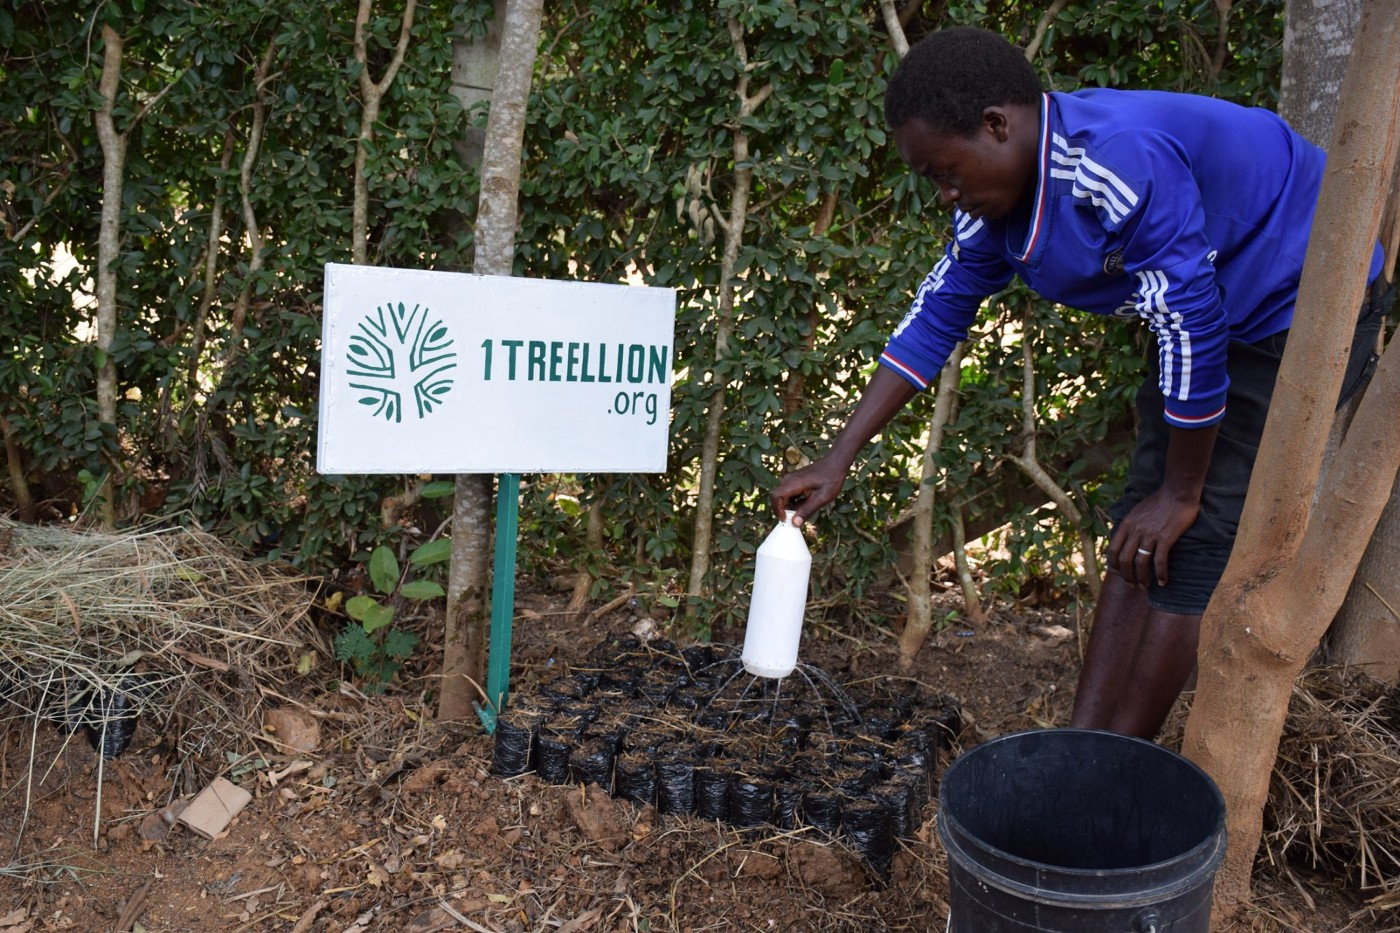 1treellion's planting in Kenya / Photo taken by Kenya Connects